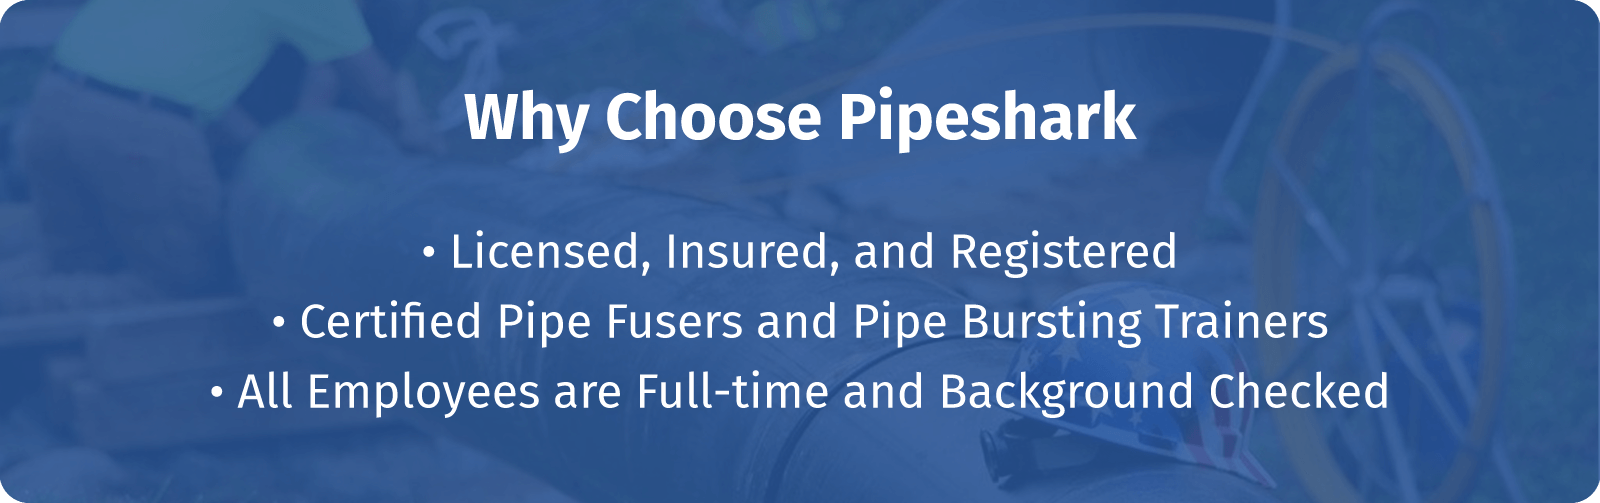 Residental Plumbing Sewer Pipe Lining Pennsylvania